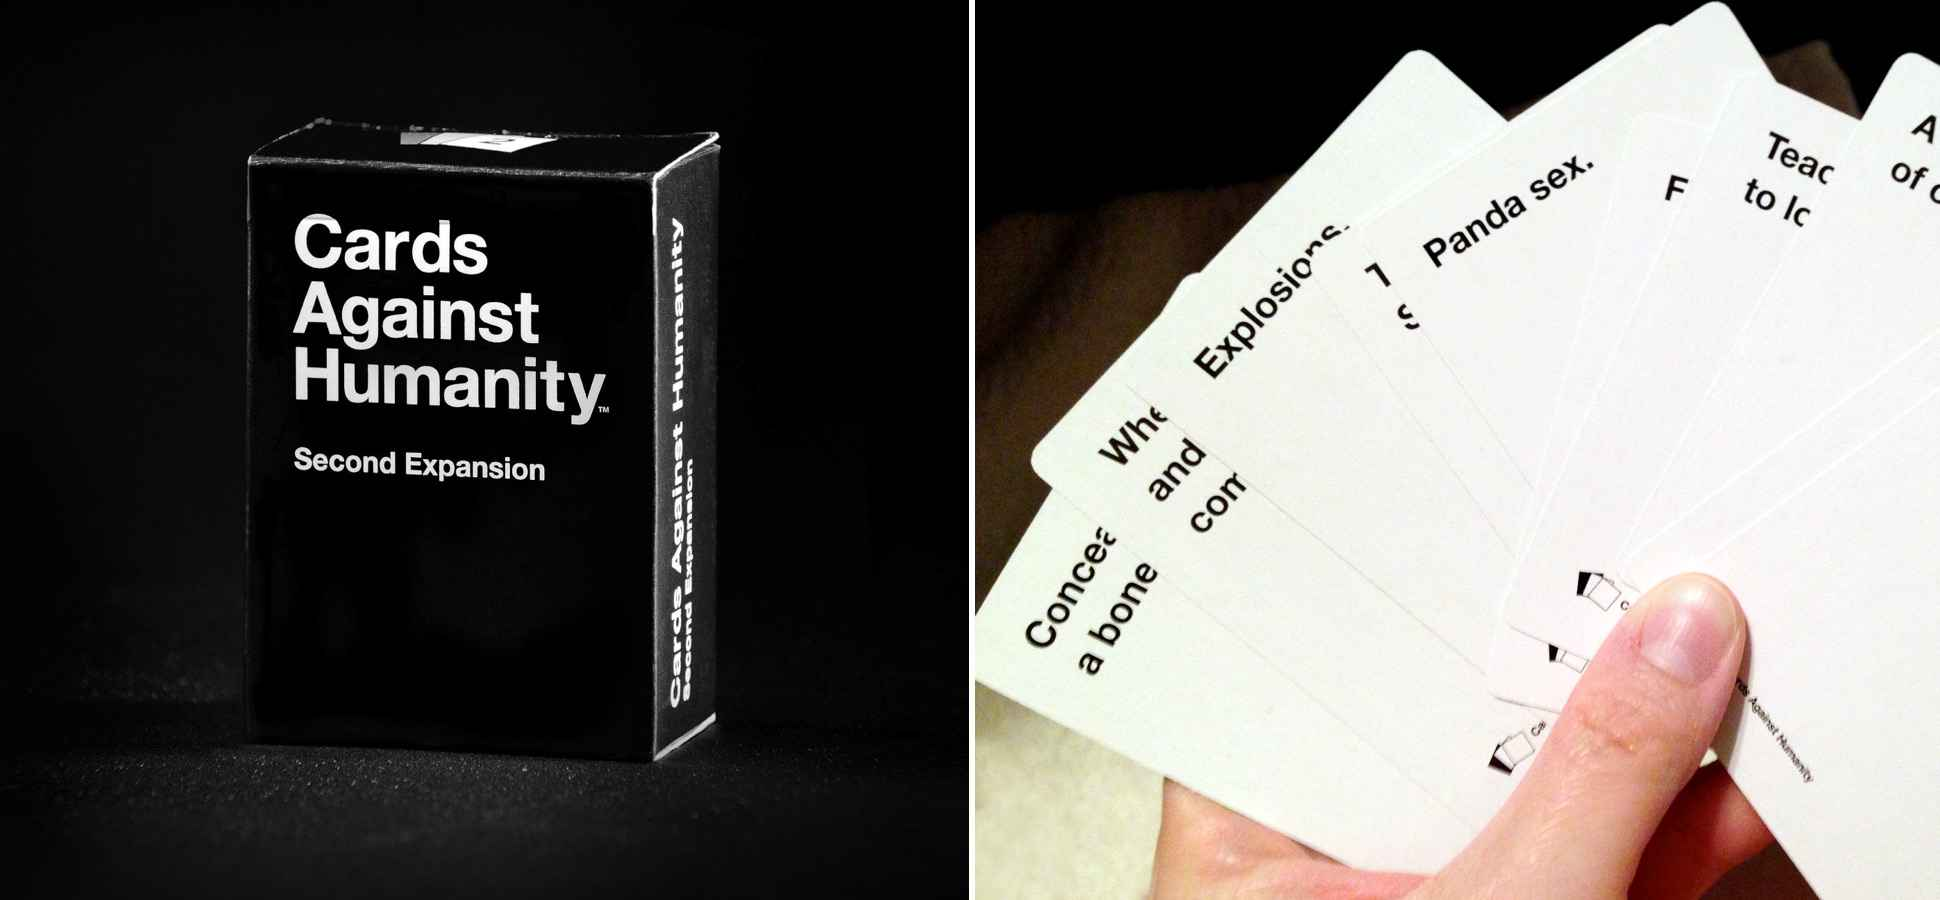 Why Cards Against Humanity's BS Makes Sense